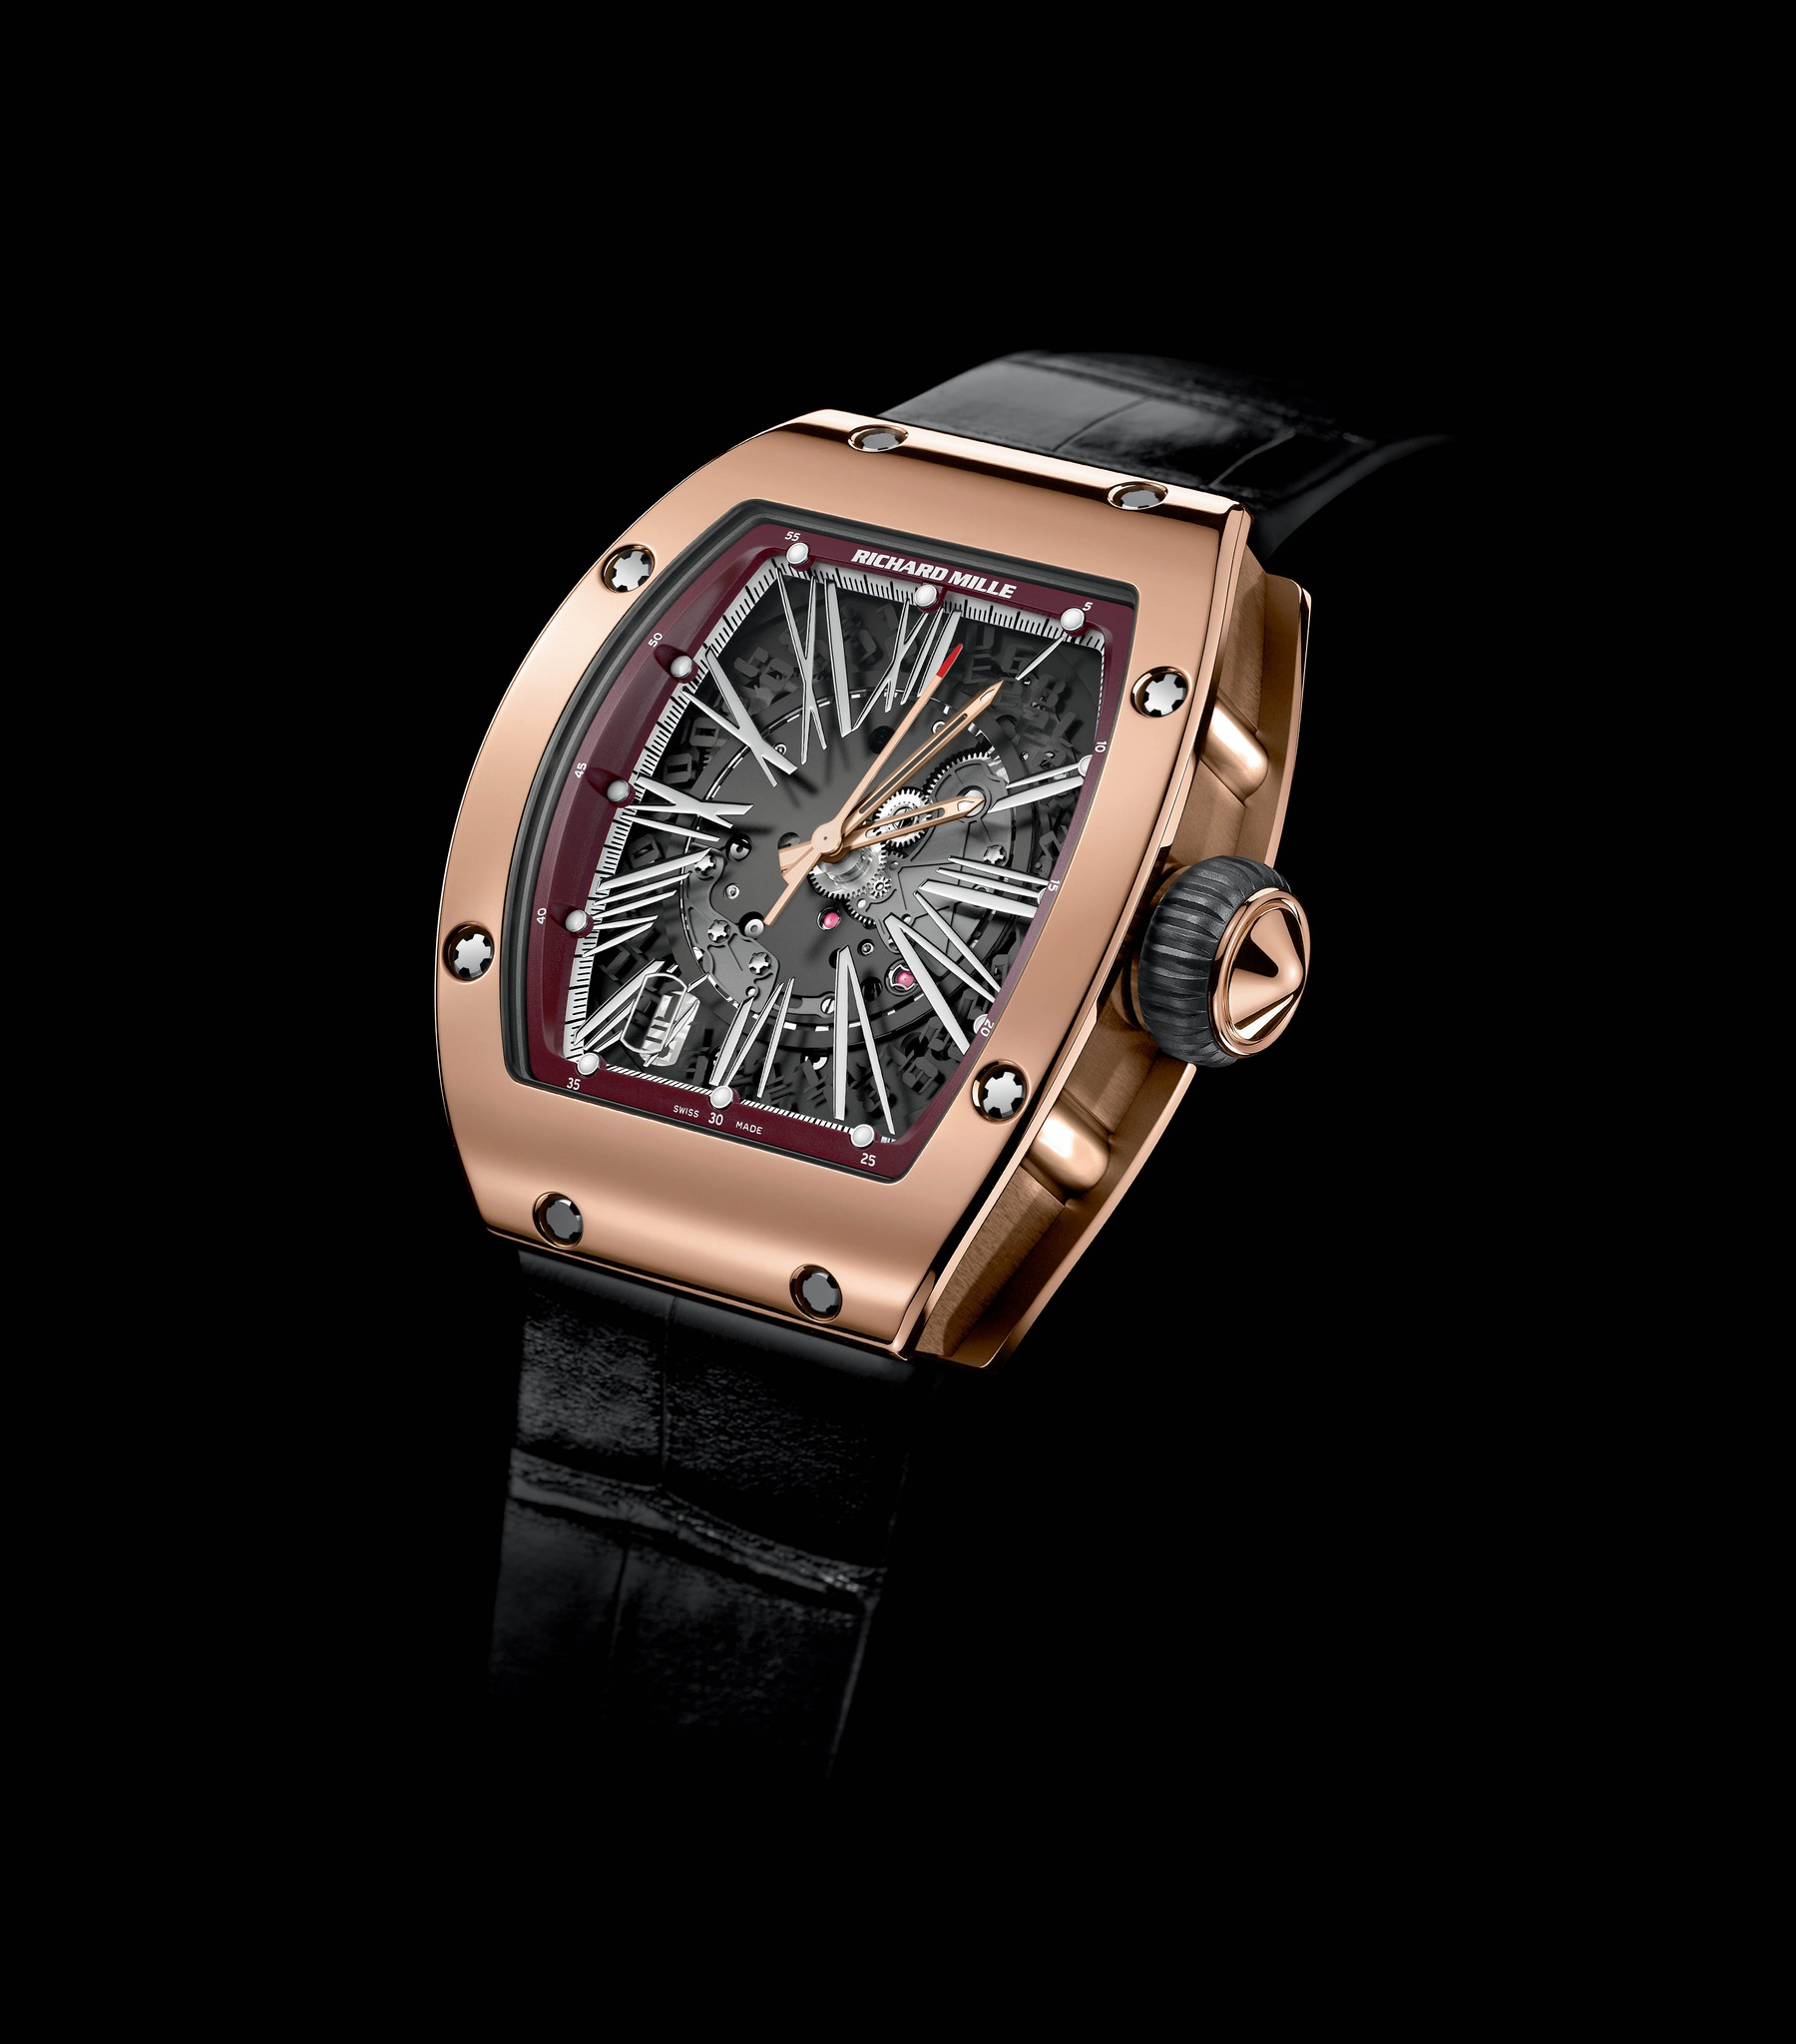 Replica Richard Mille RM 023 Automatic Red Gold Watch